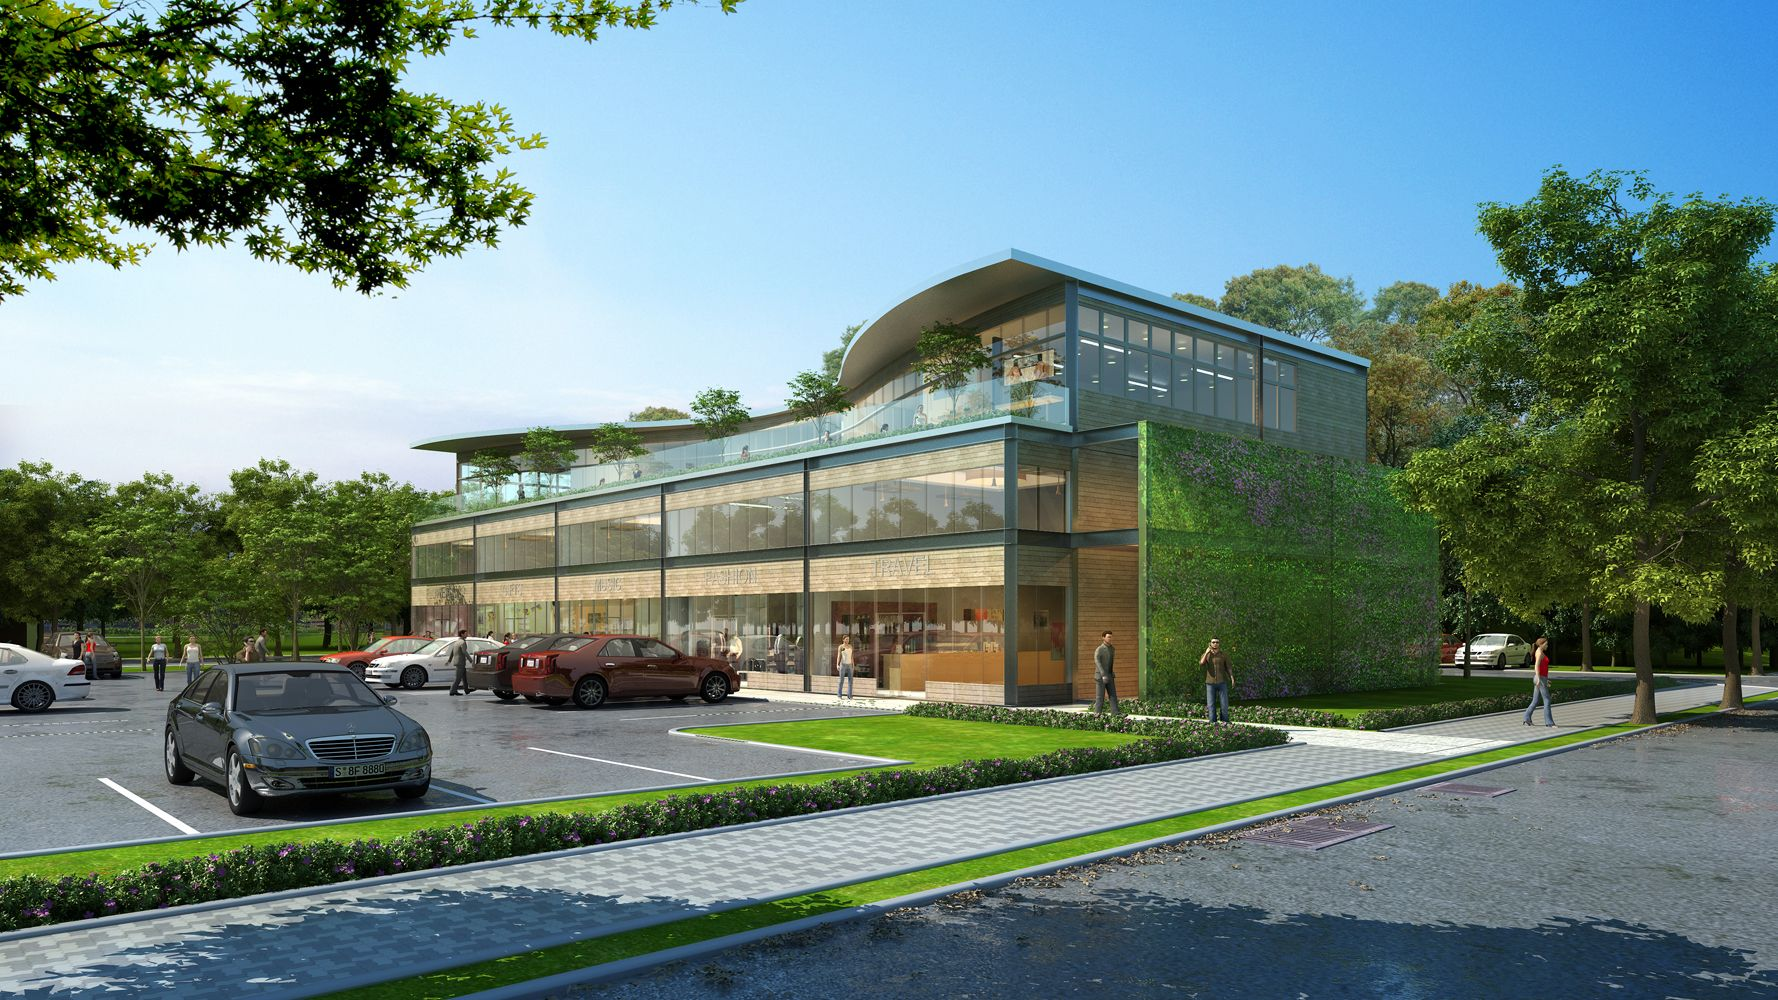 A sustainable retail and office building proposal